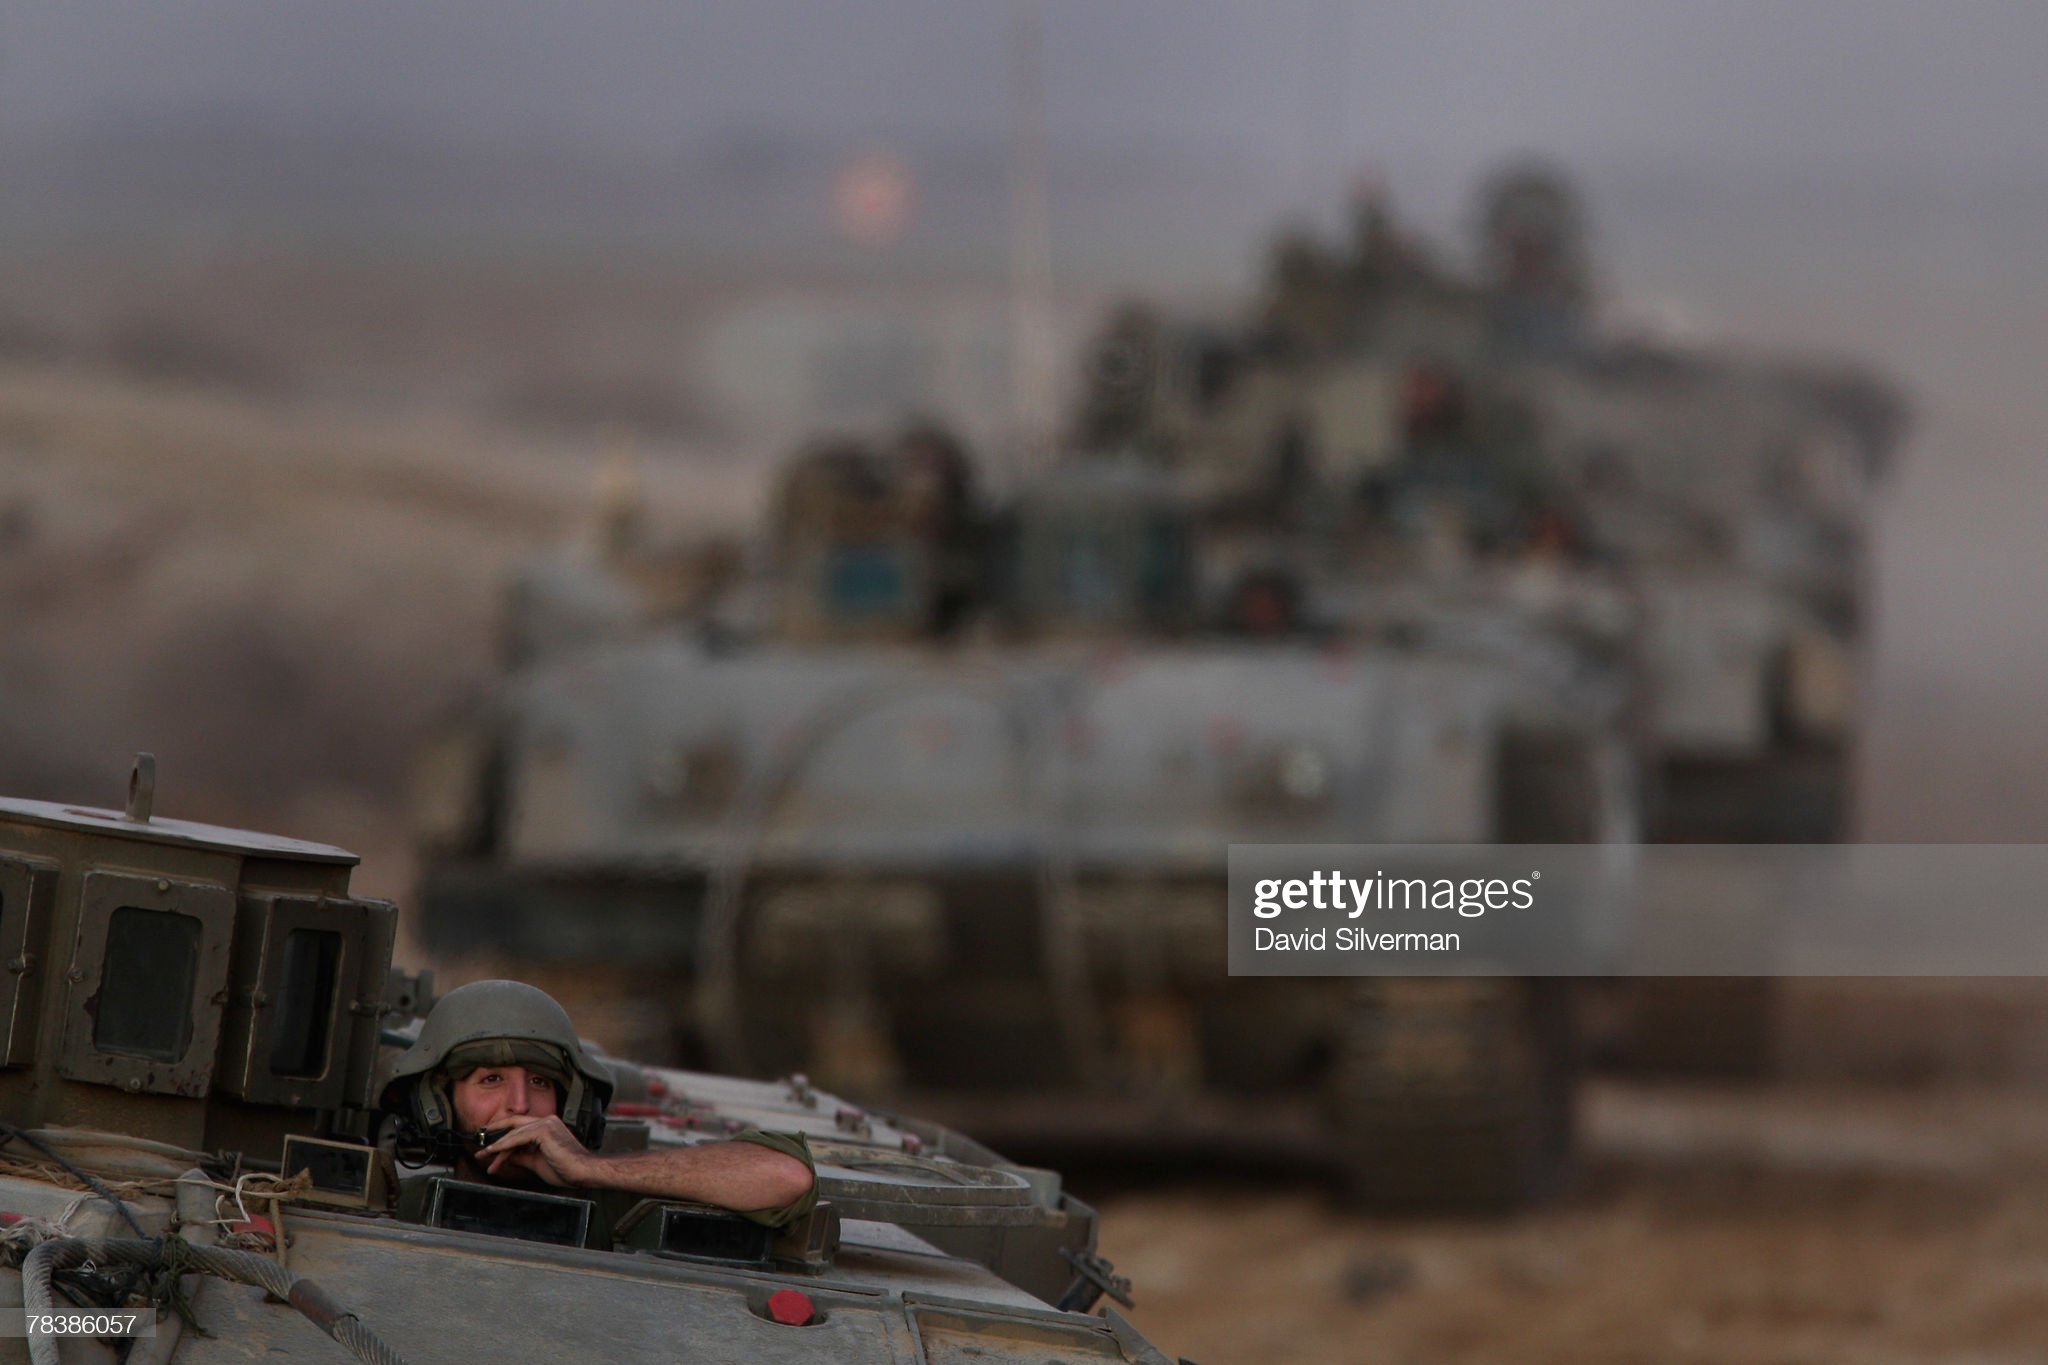 https://media.gettyimages.com/photos/an-israeli-armored-column-crosses-the-border-and-back-to-base-after-picture-id78386057?s=2048x2048